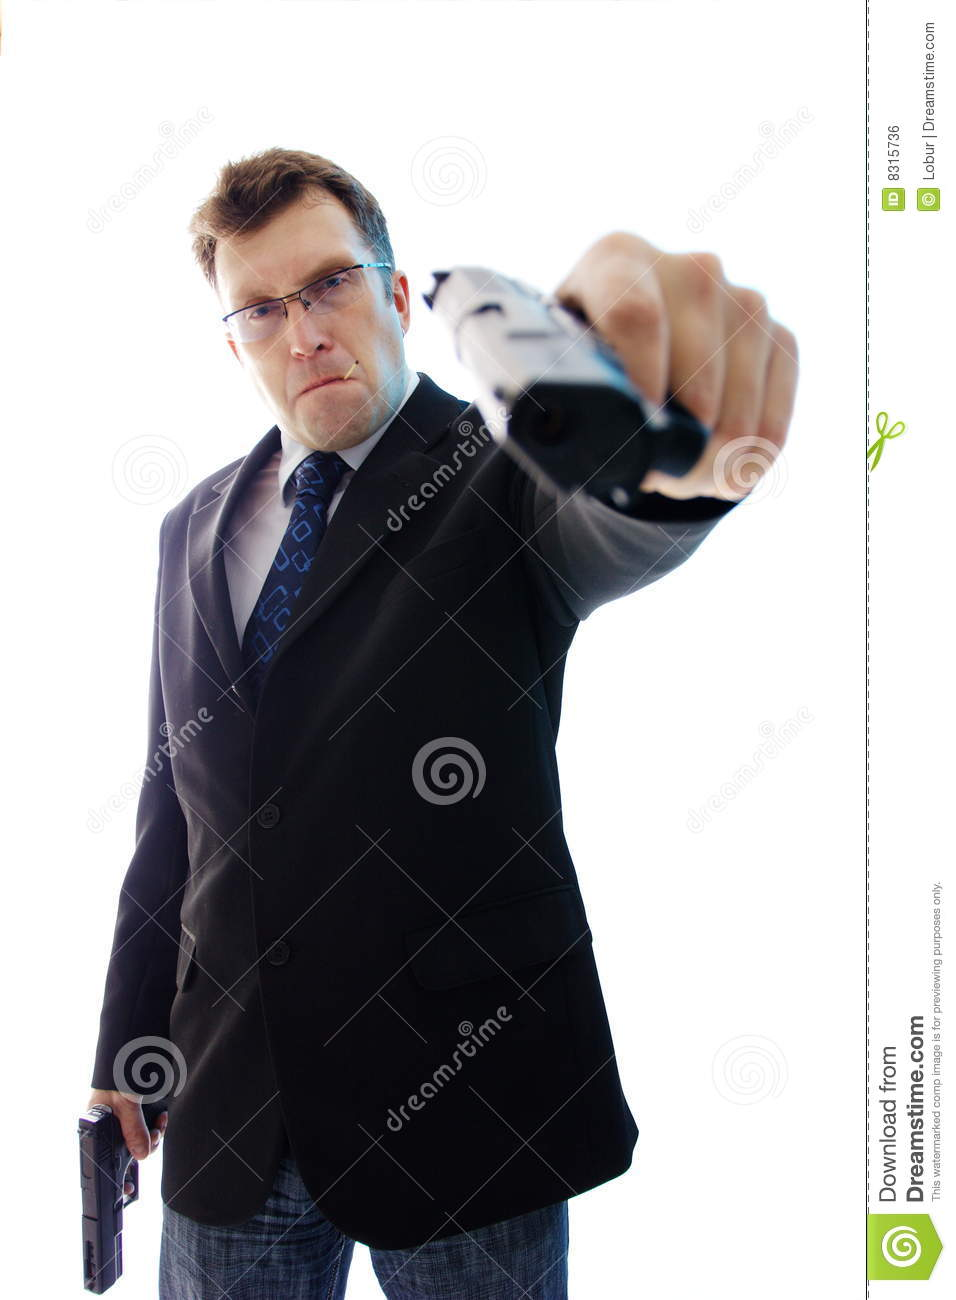 Aimed angry businessman criminal guns two